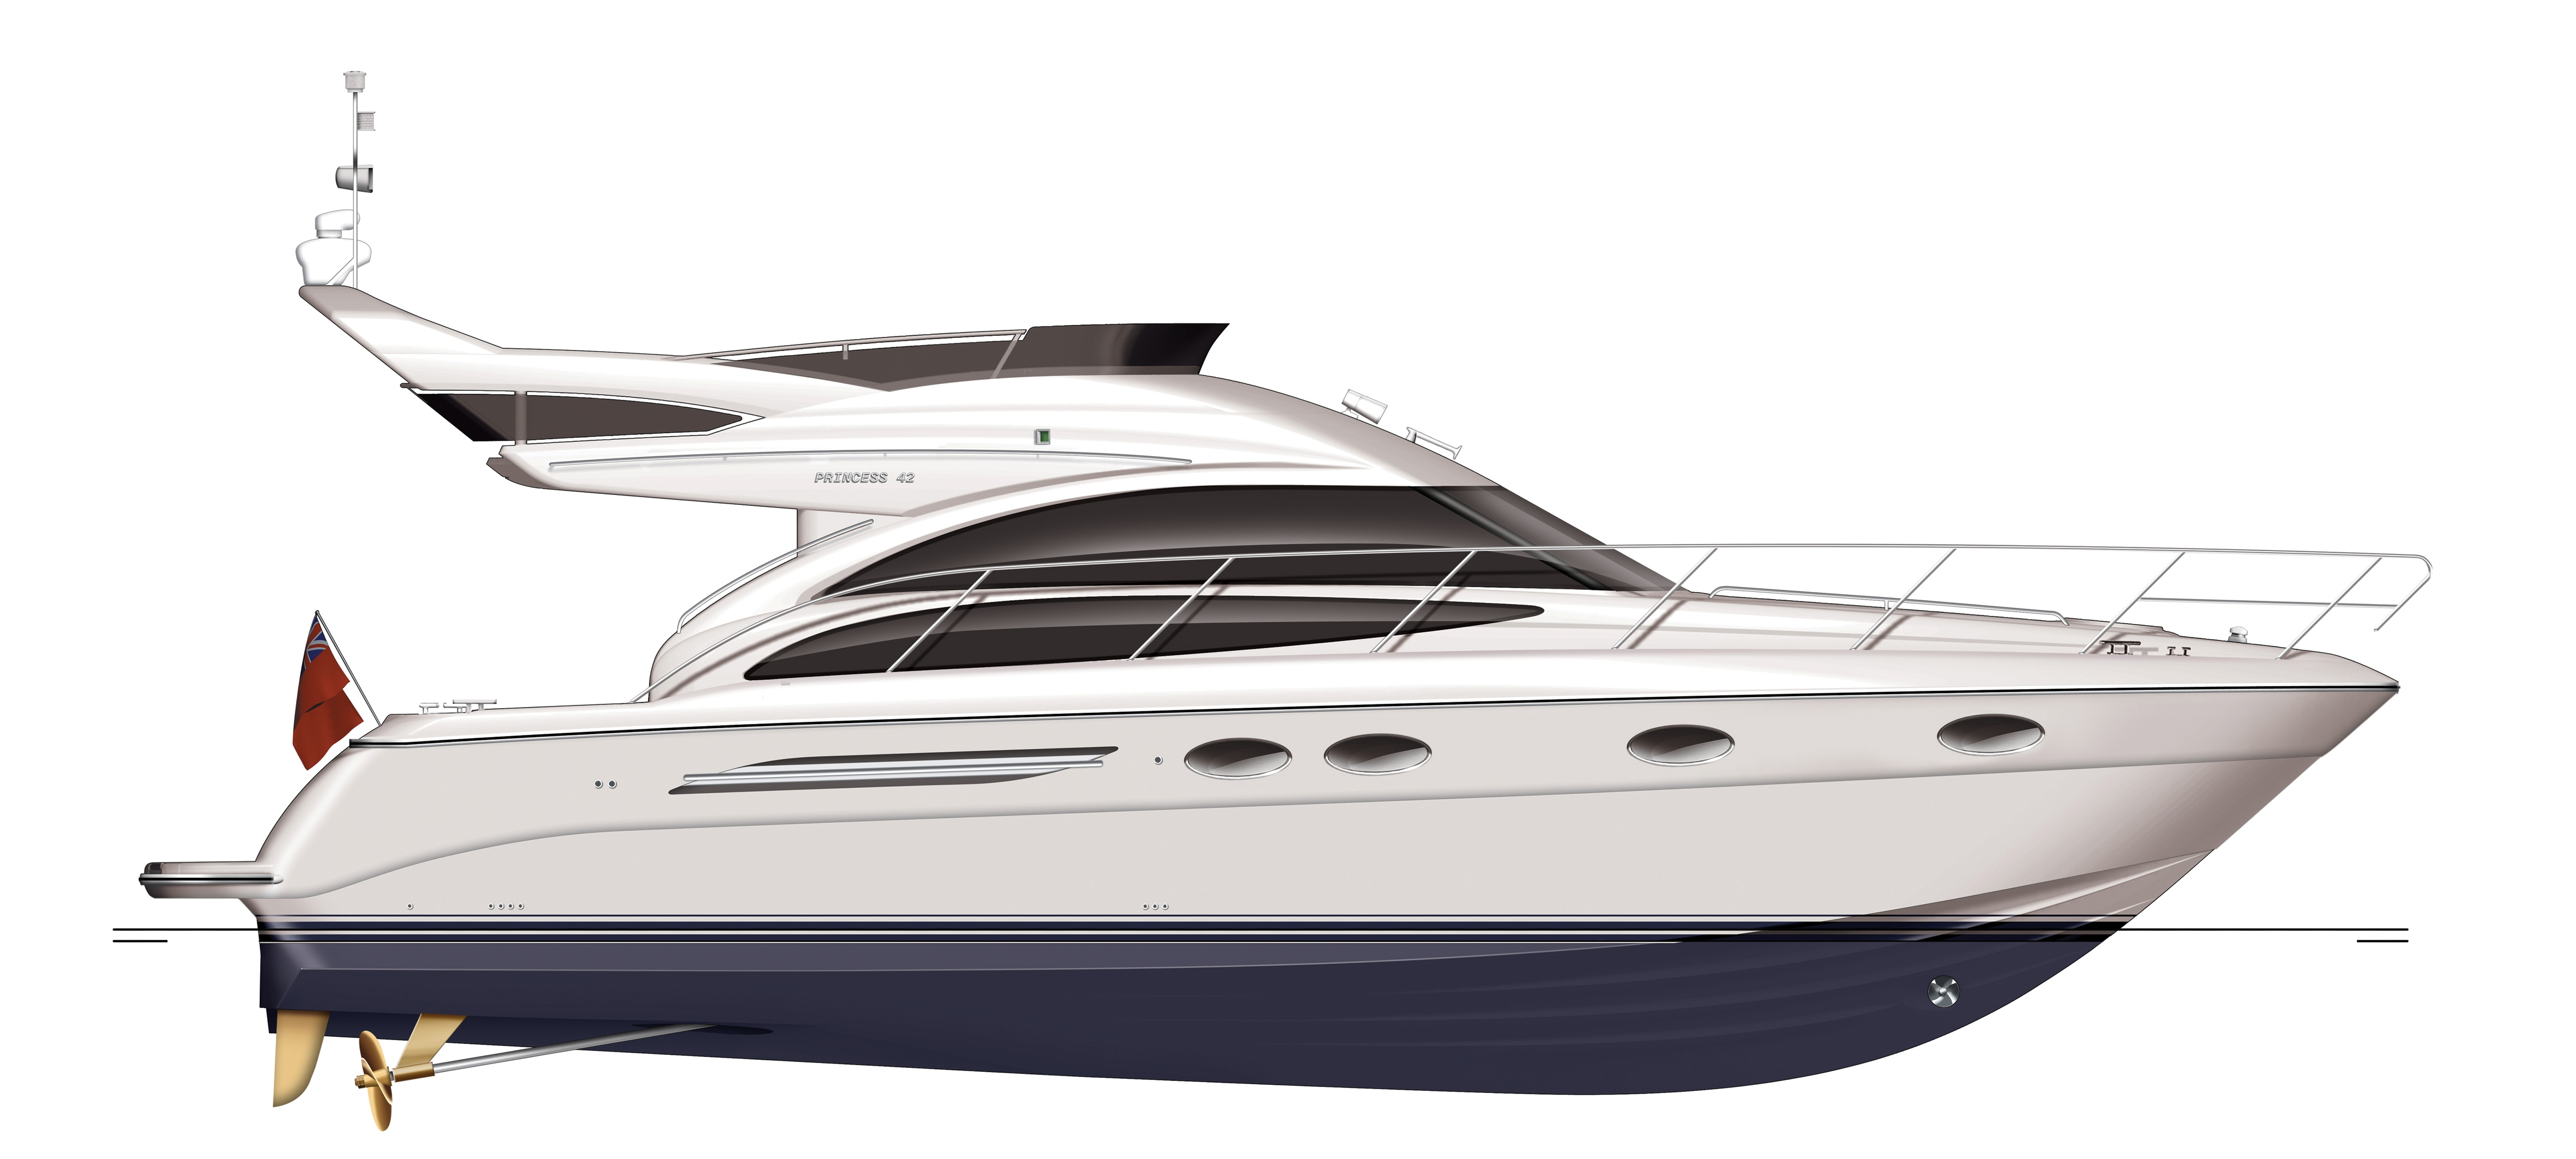 This Latest 42 Adopts A Lean And More Dynamic Profile With Wrap around